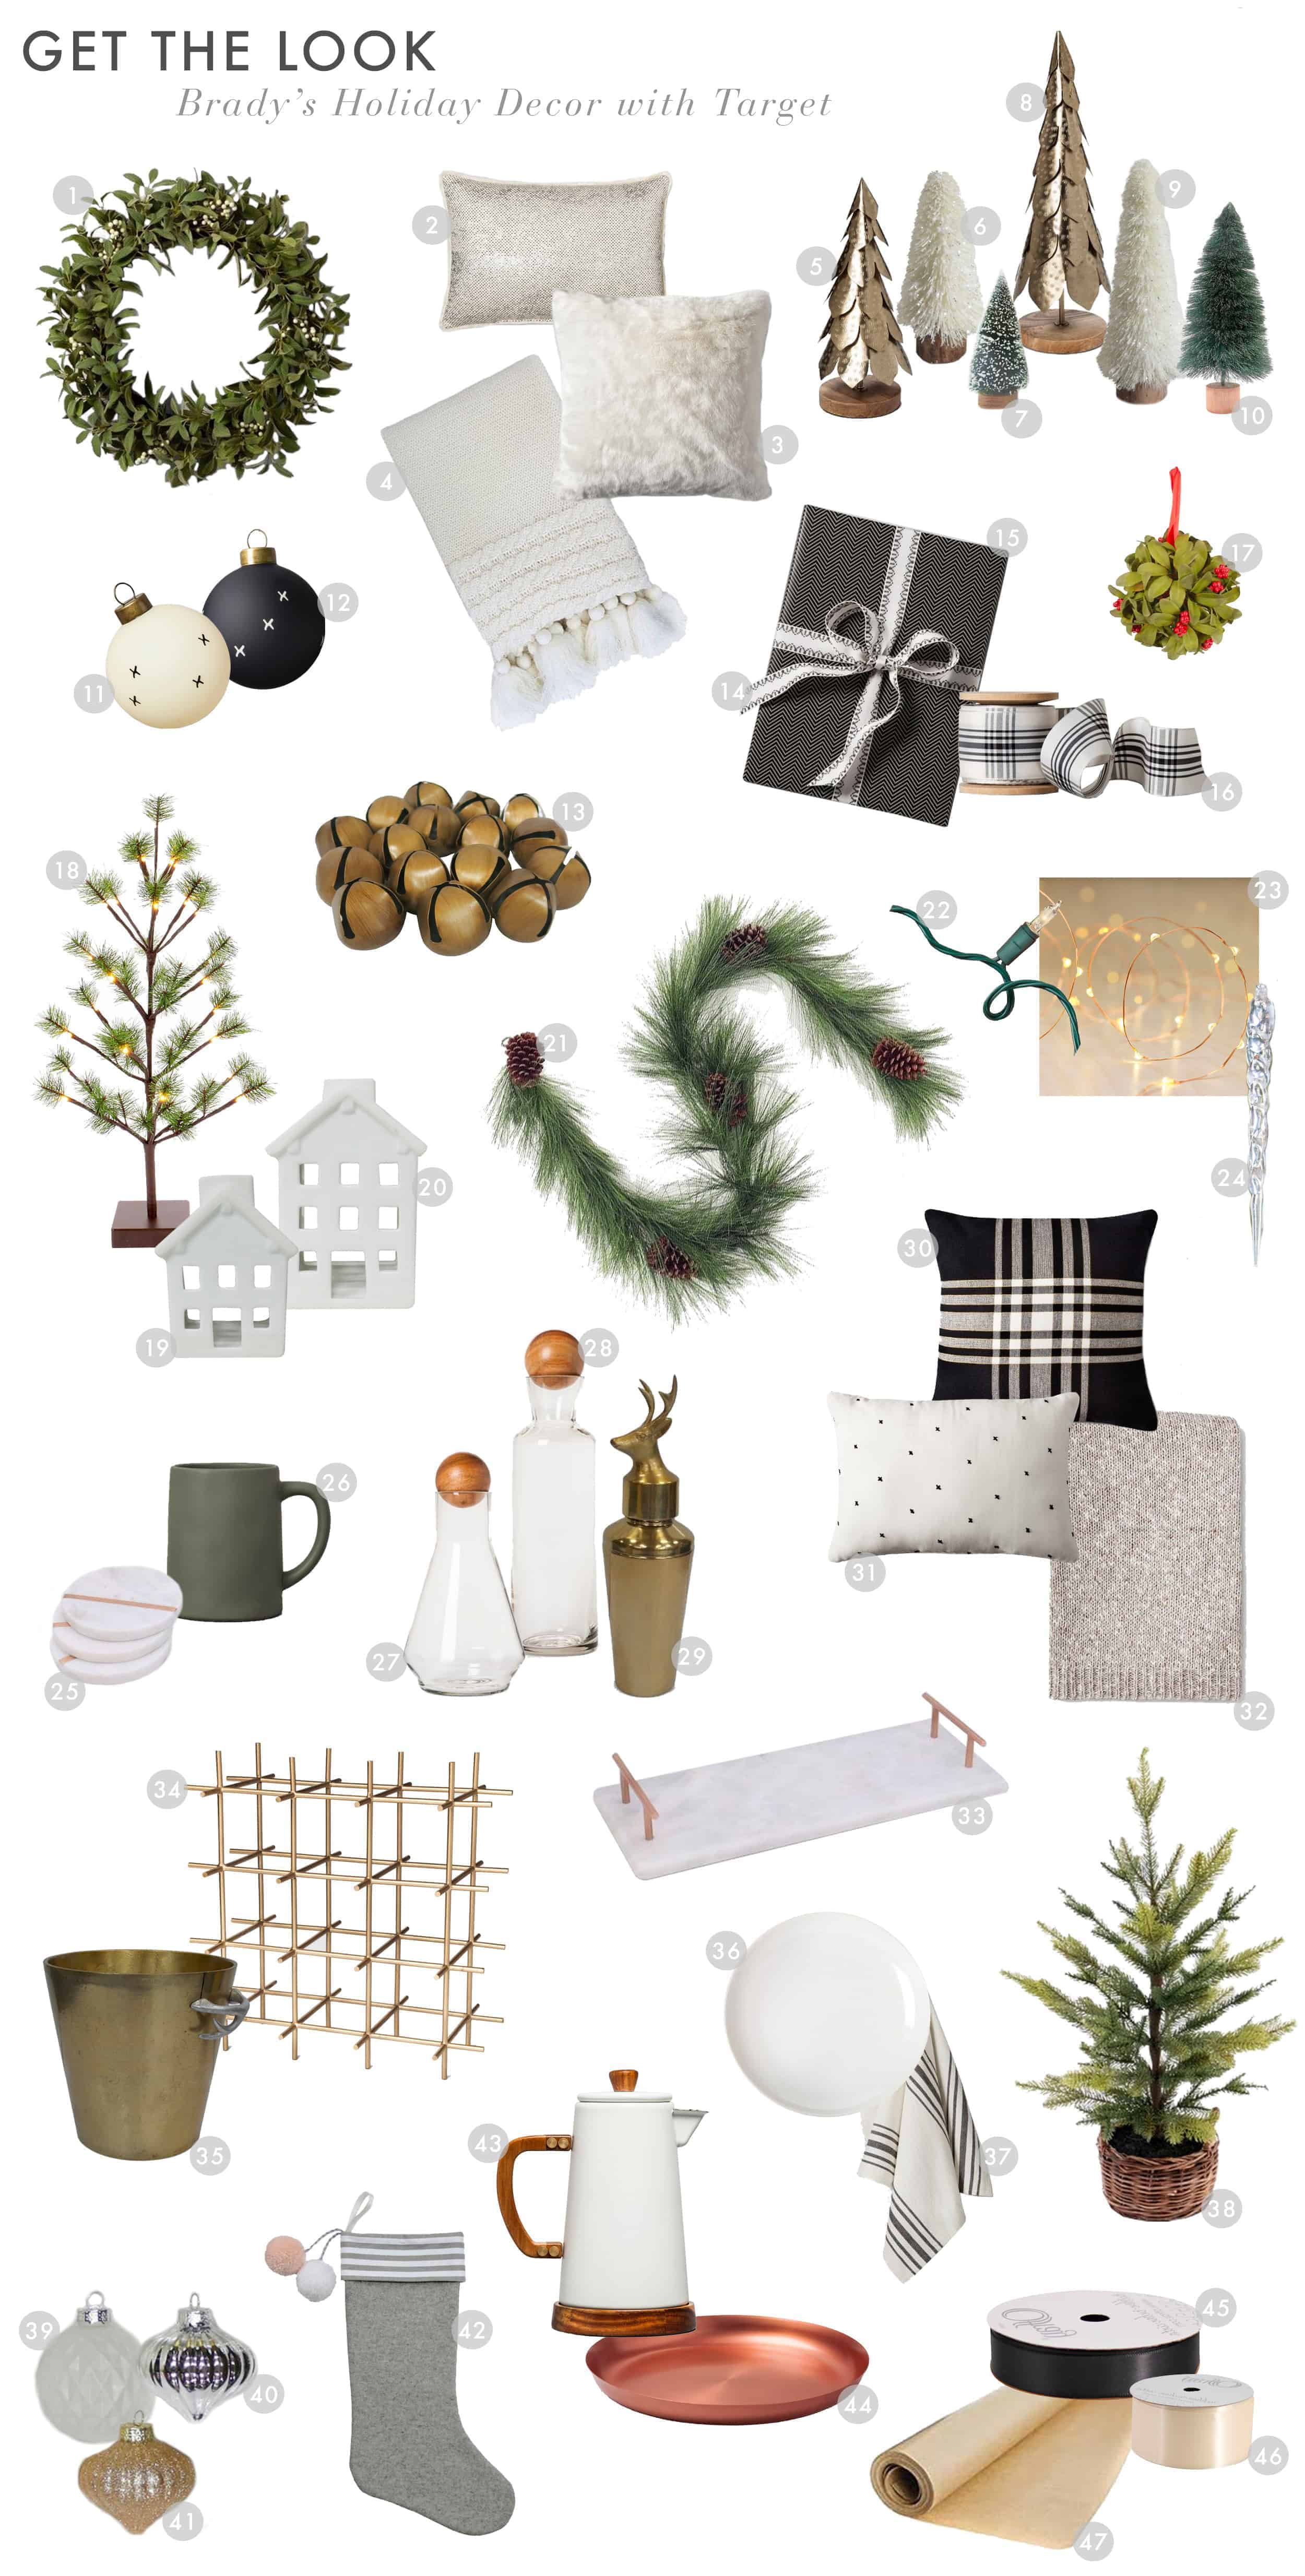 Emily Henderson Target Holiday Christmas 2017 Holiday Decor Bradys Home Get The Look 01